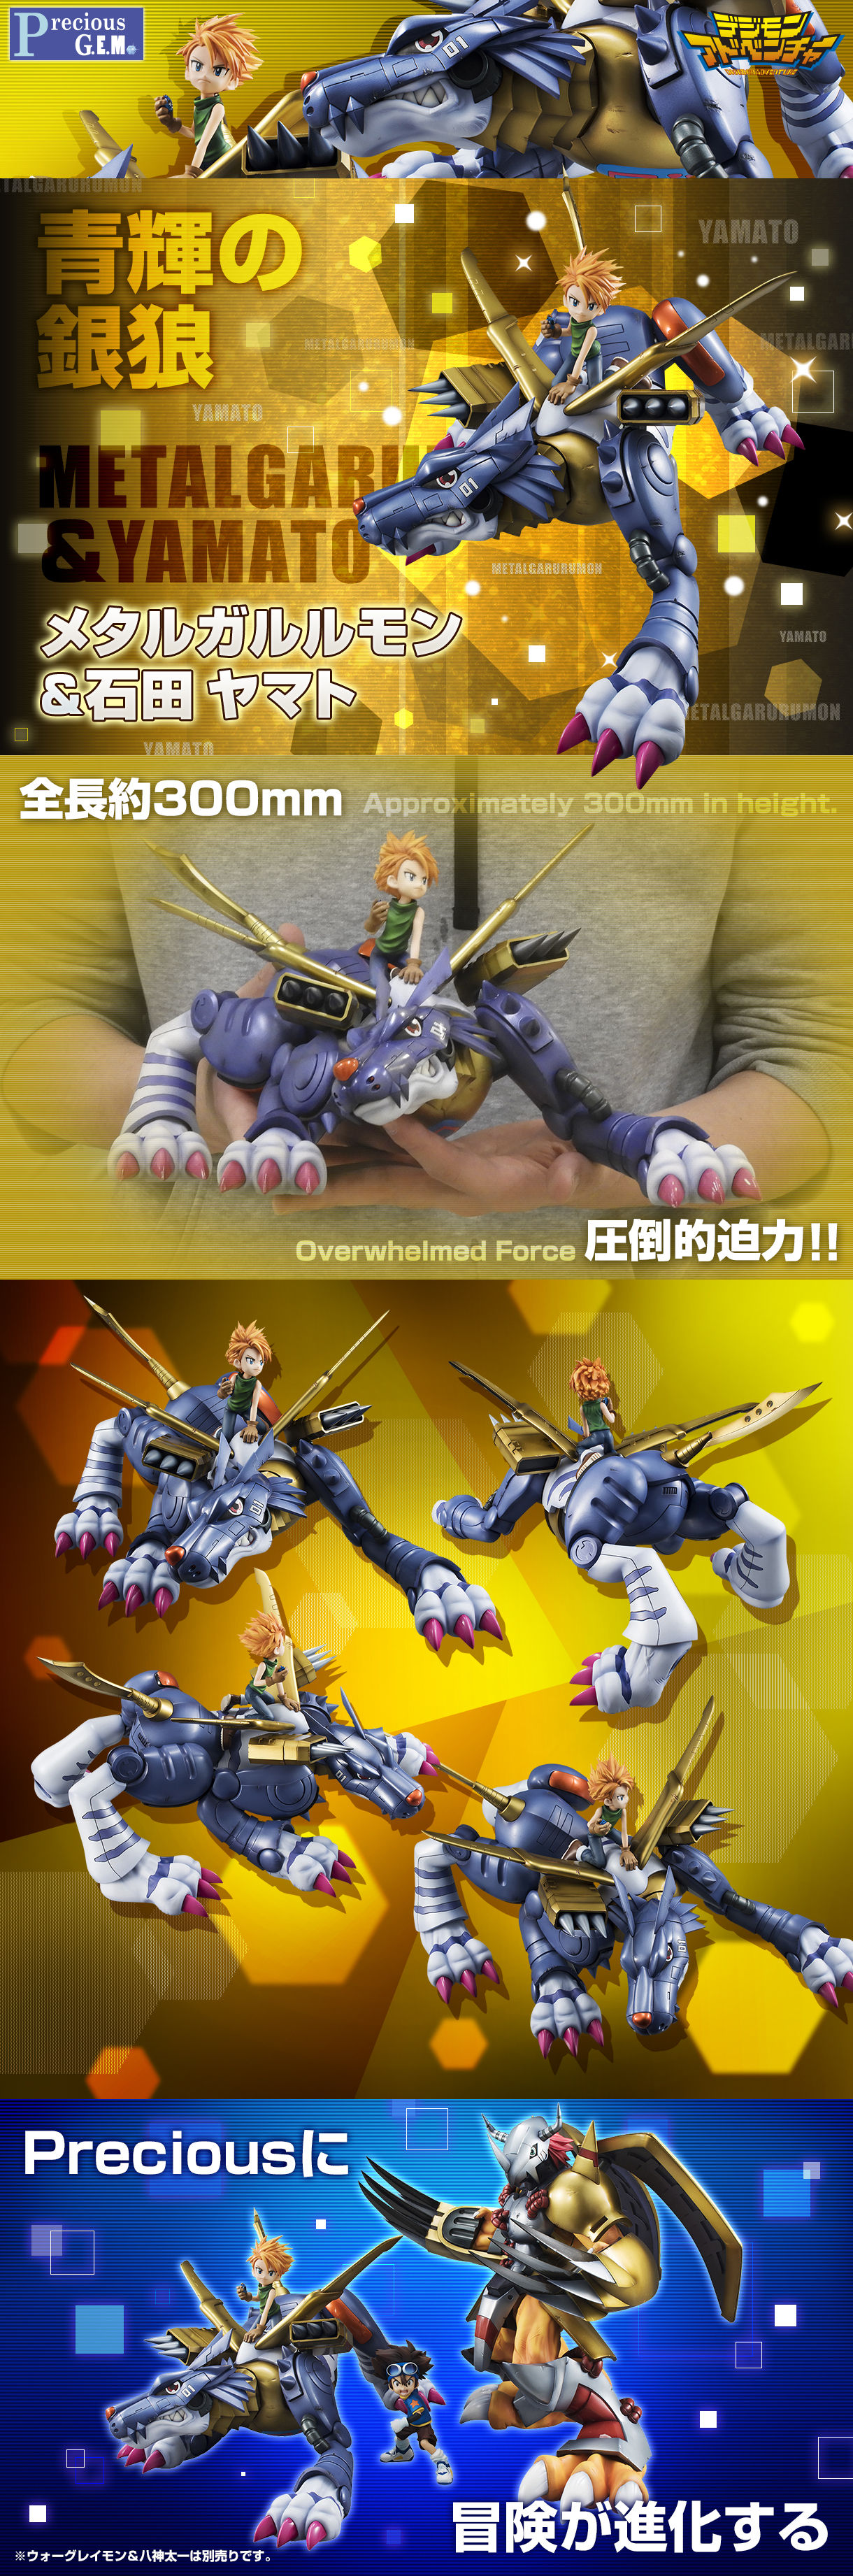 PRECIOUS G.E.M. DIGIMON METALGARURUMON AND YAMATO